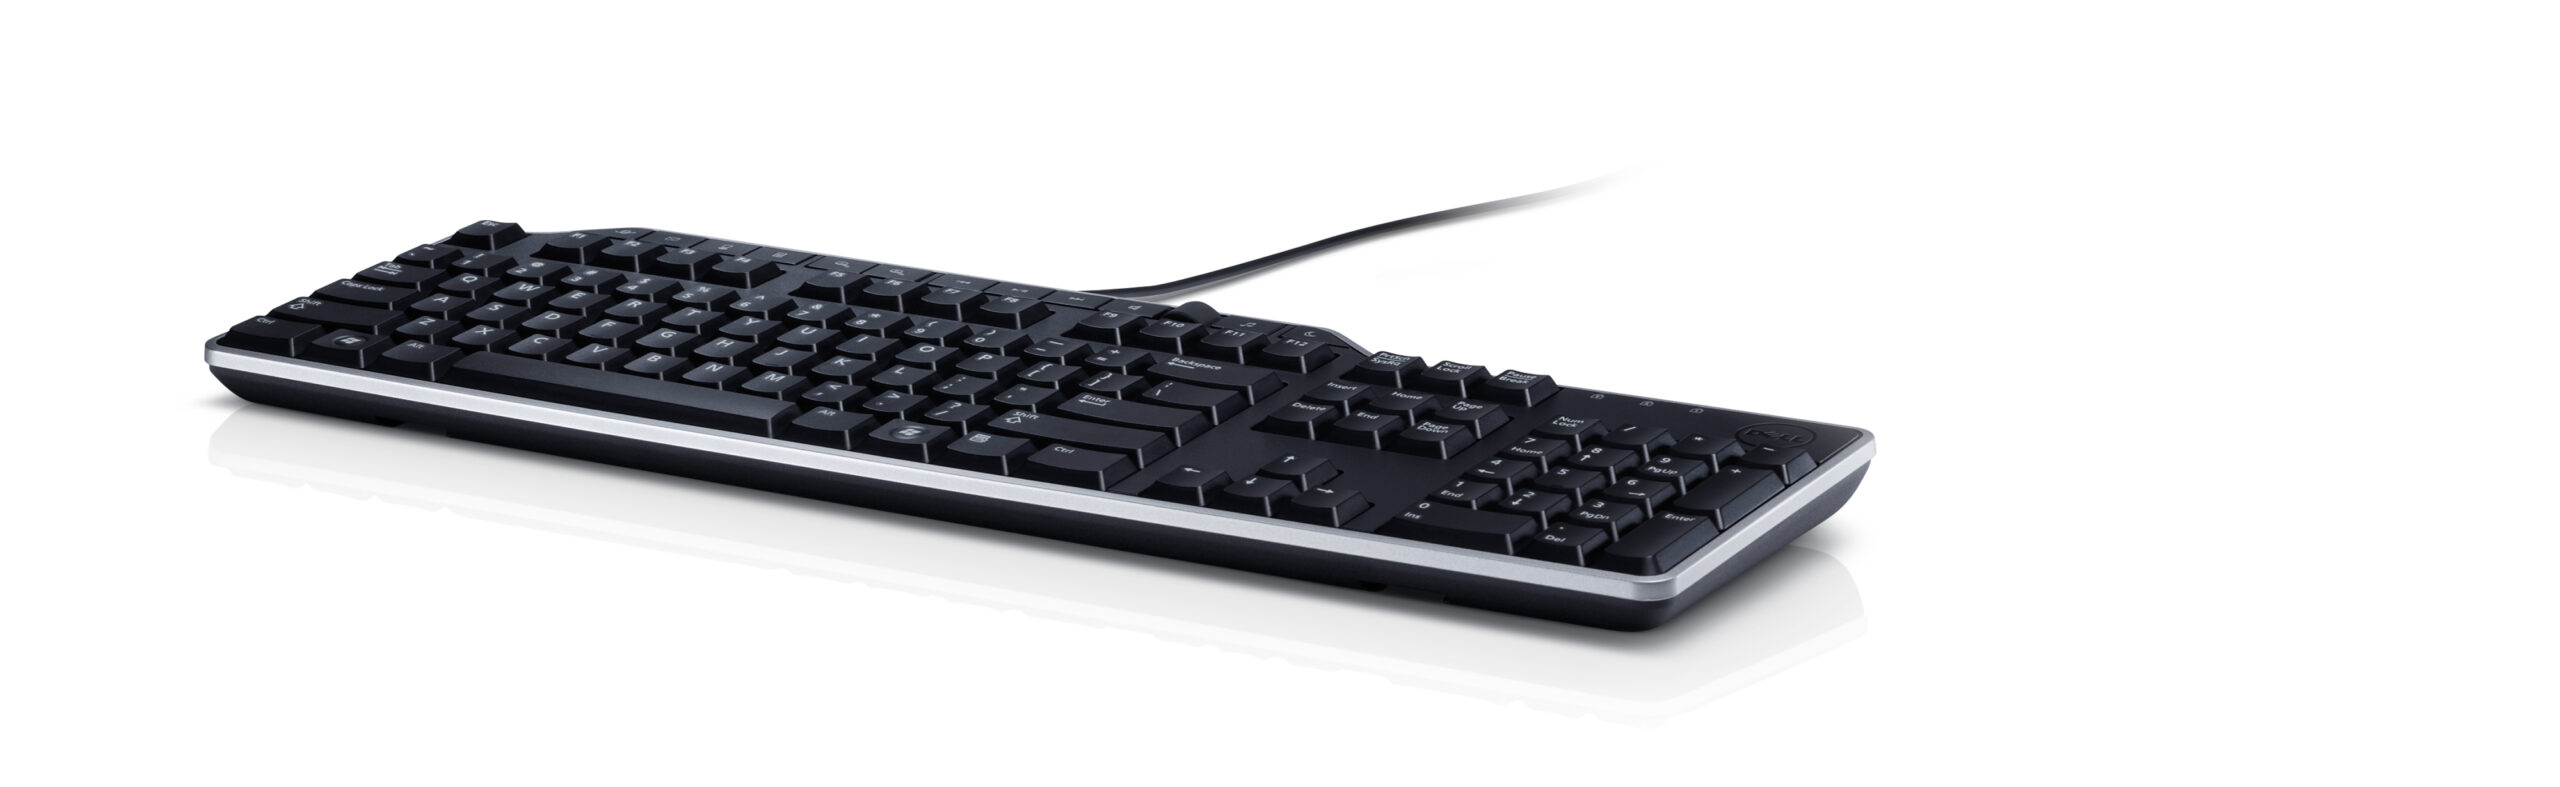 Keyboard US/Euro (QWERTY) Dell KB-522 Wired Busi